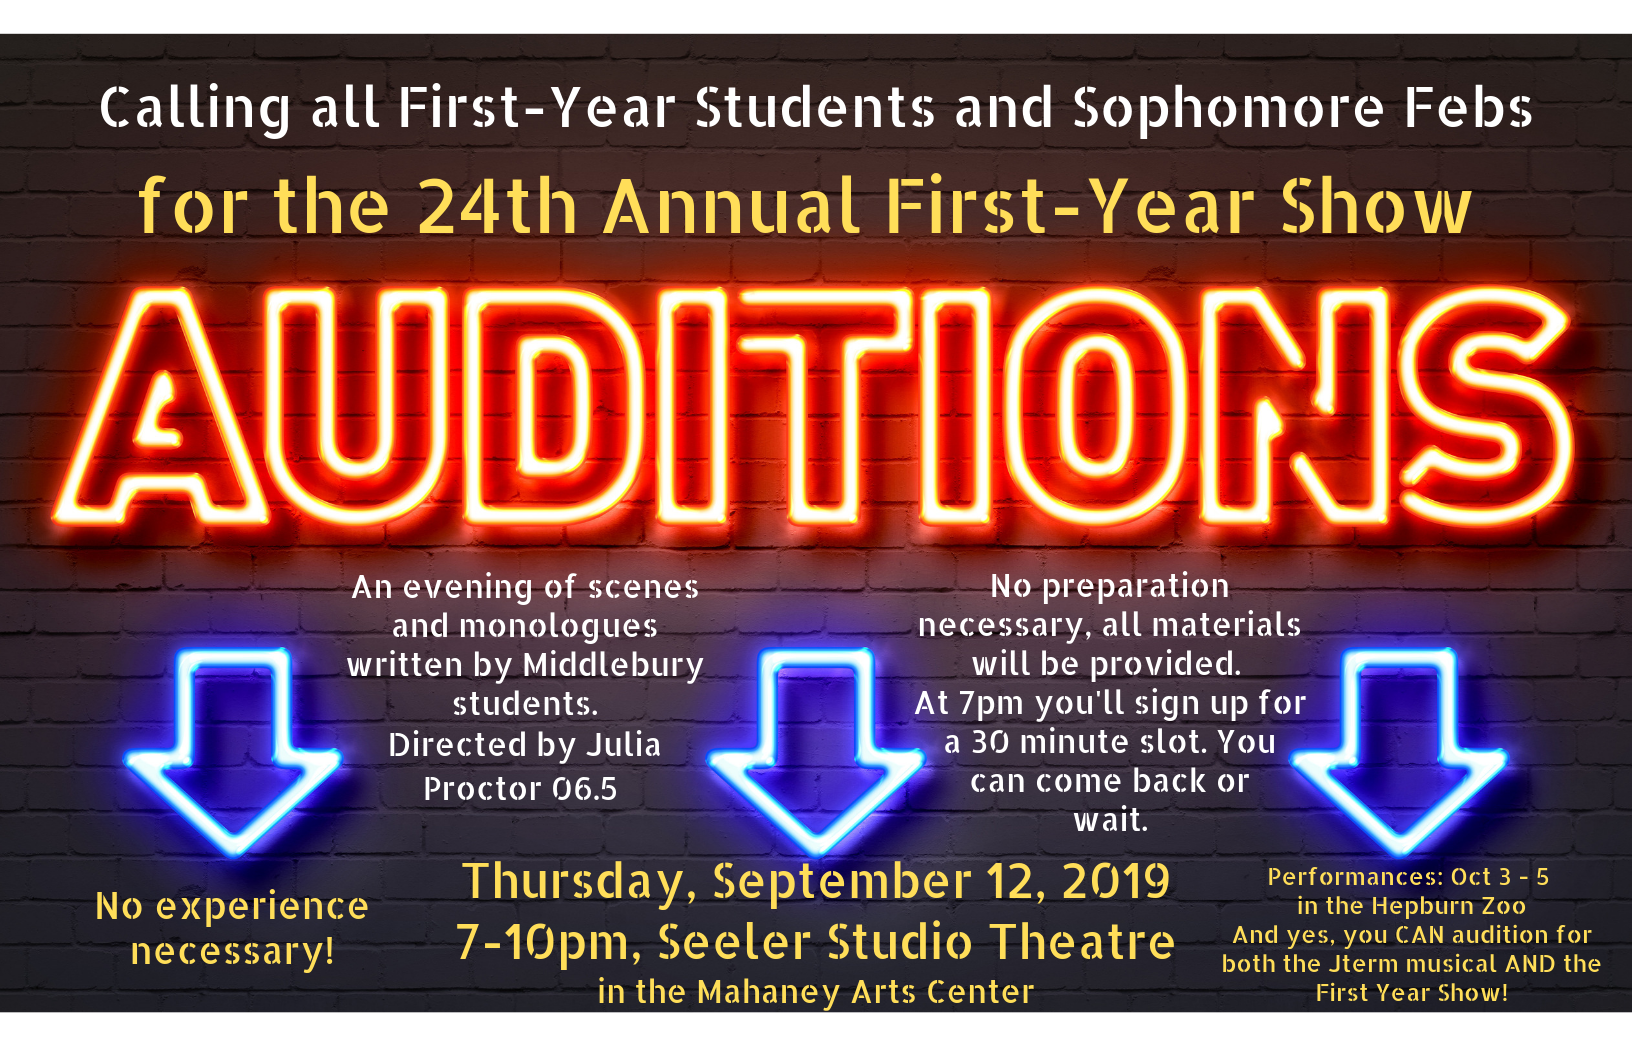 Auditions for the 24th Annual First-Year Show